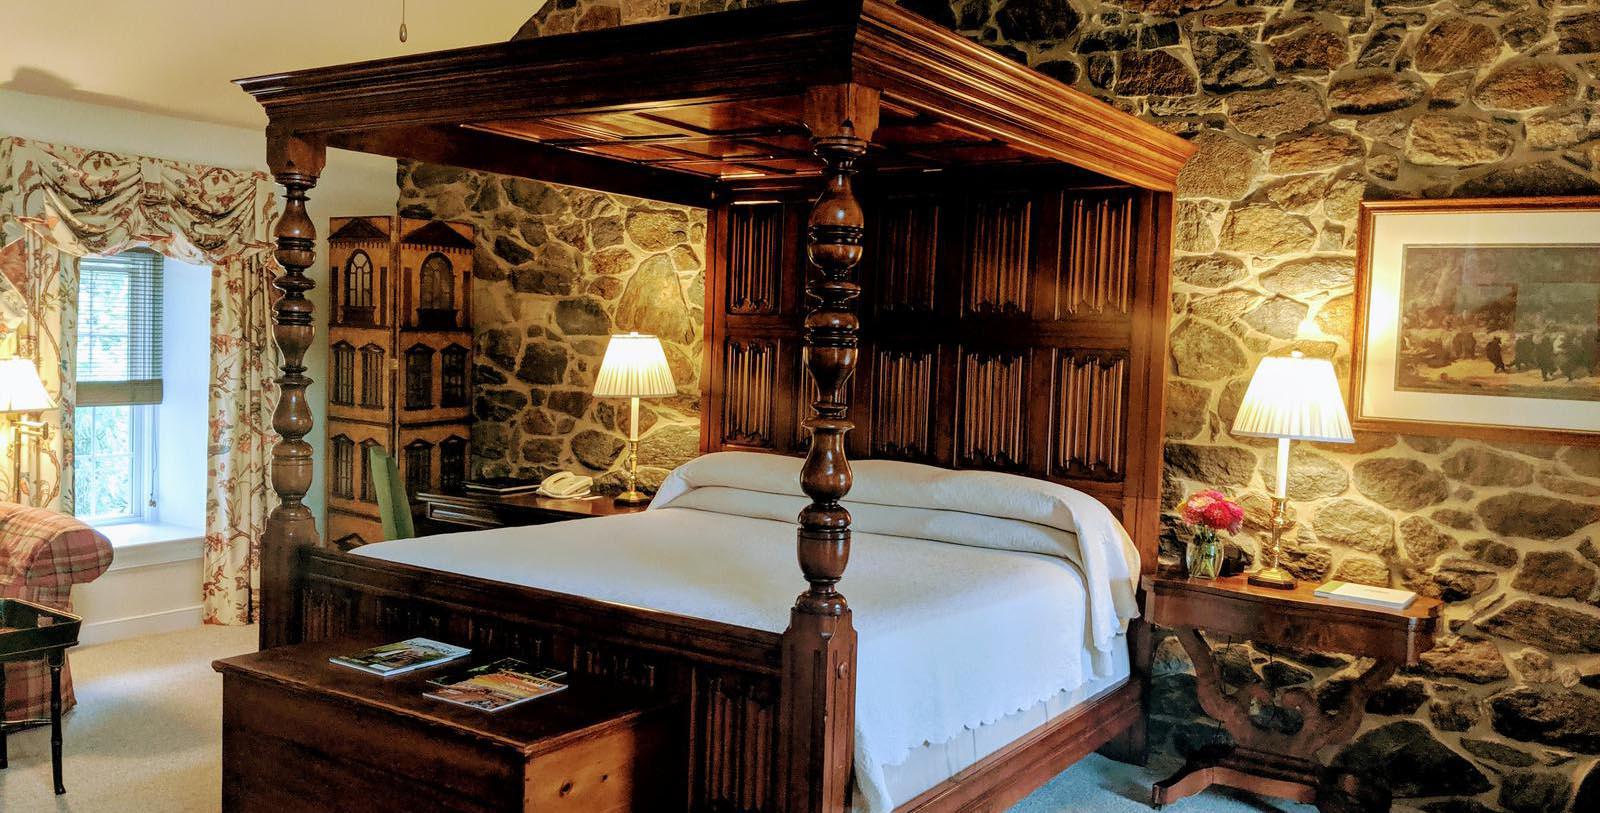 Image of Guestroom Interior The Inn at Montchanin Village, 1799, Member of Historic Hotels of America, in Montchanin, Delaware, Taste